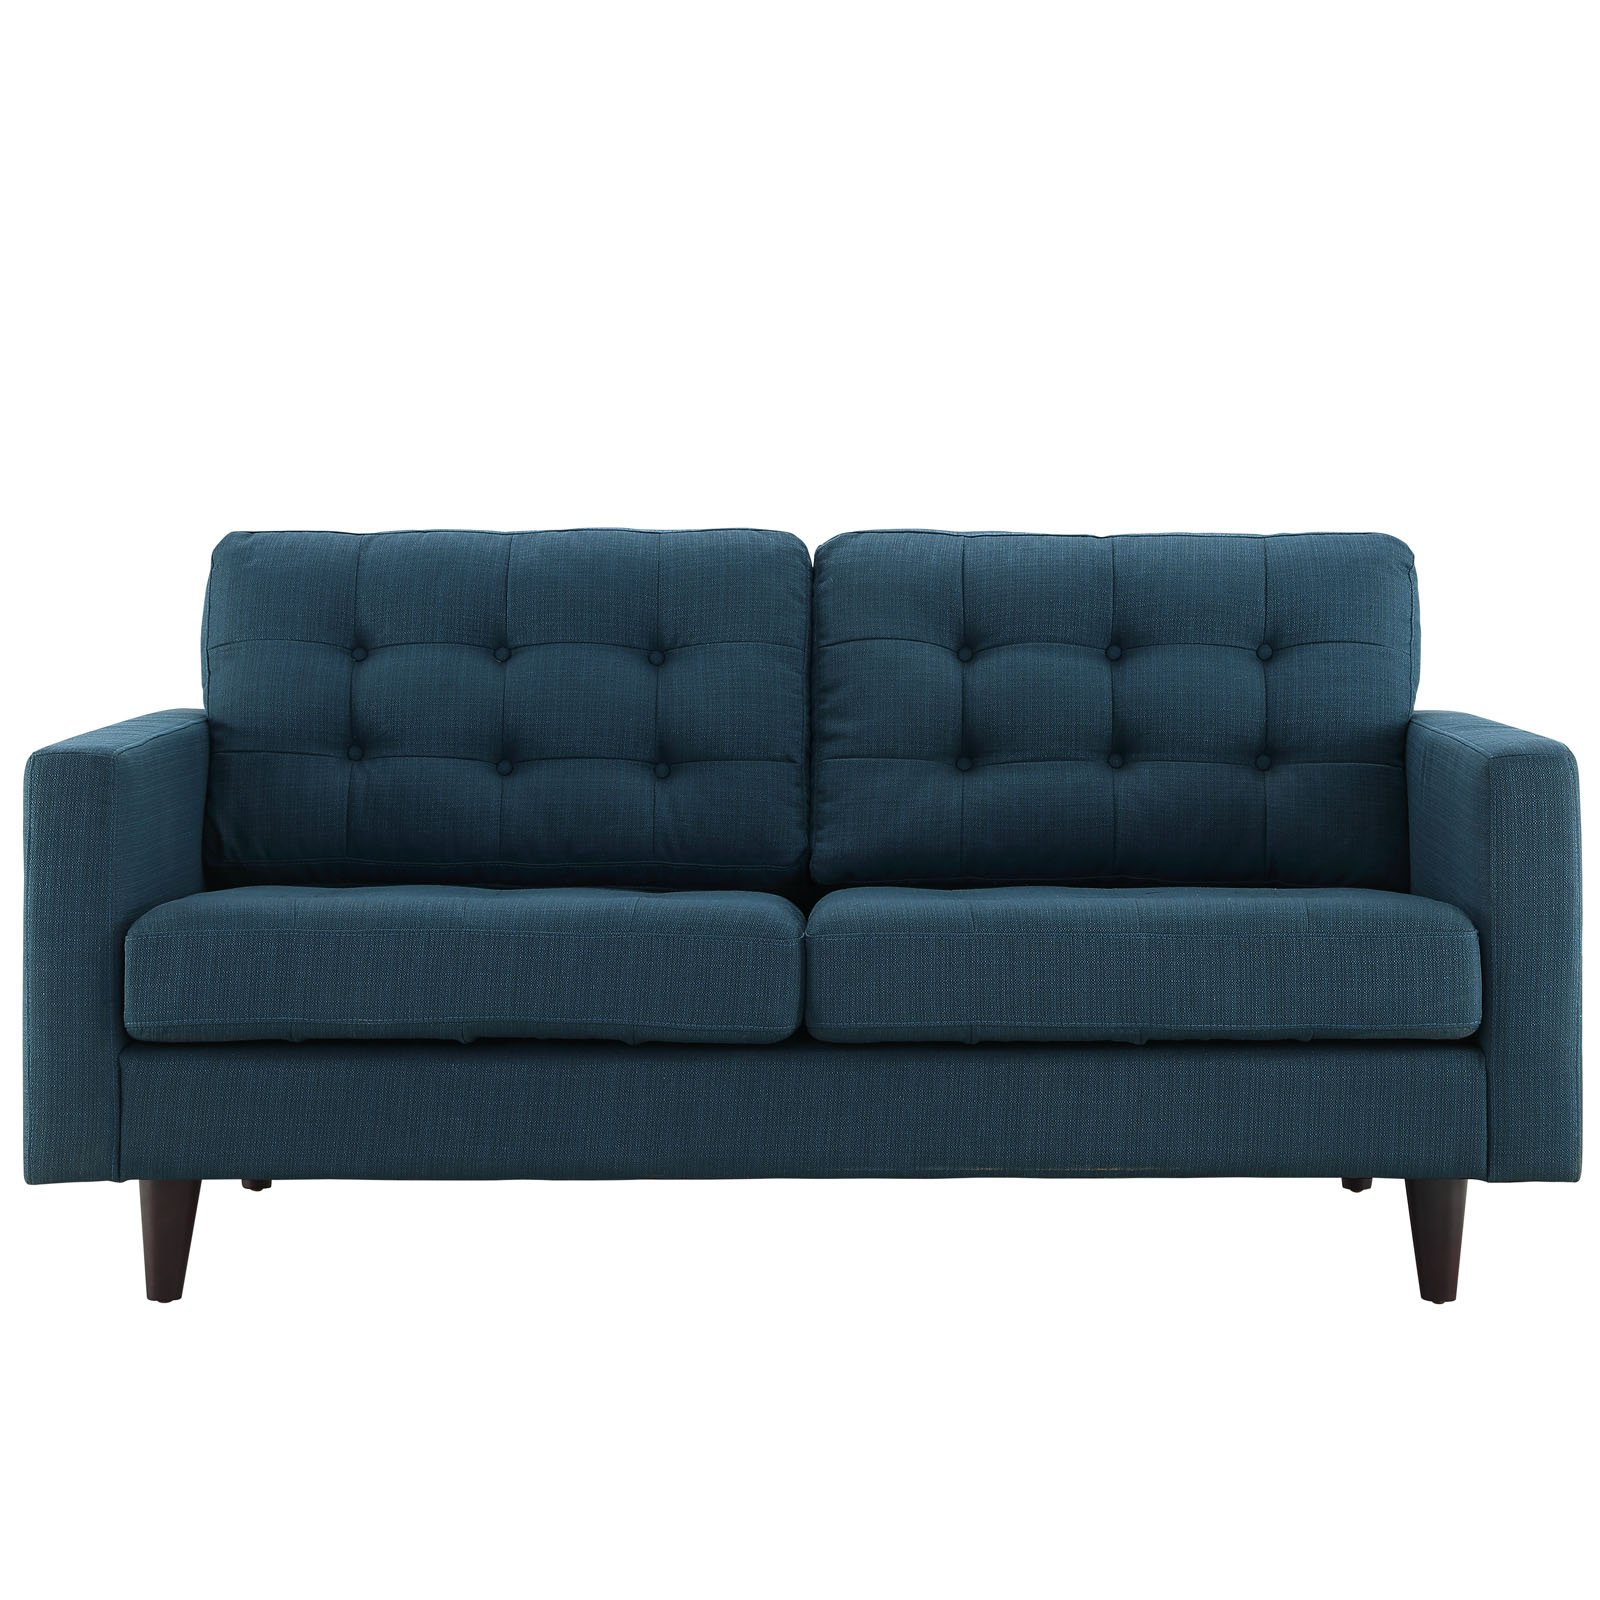 Modway Empress Mid-Century Modern Upholstered Fabric Loveseat In Azure by Modway (Image #1)